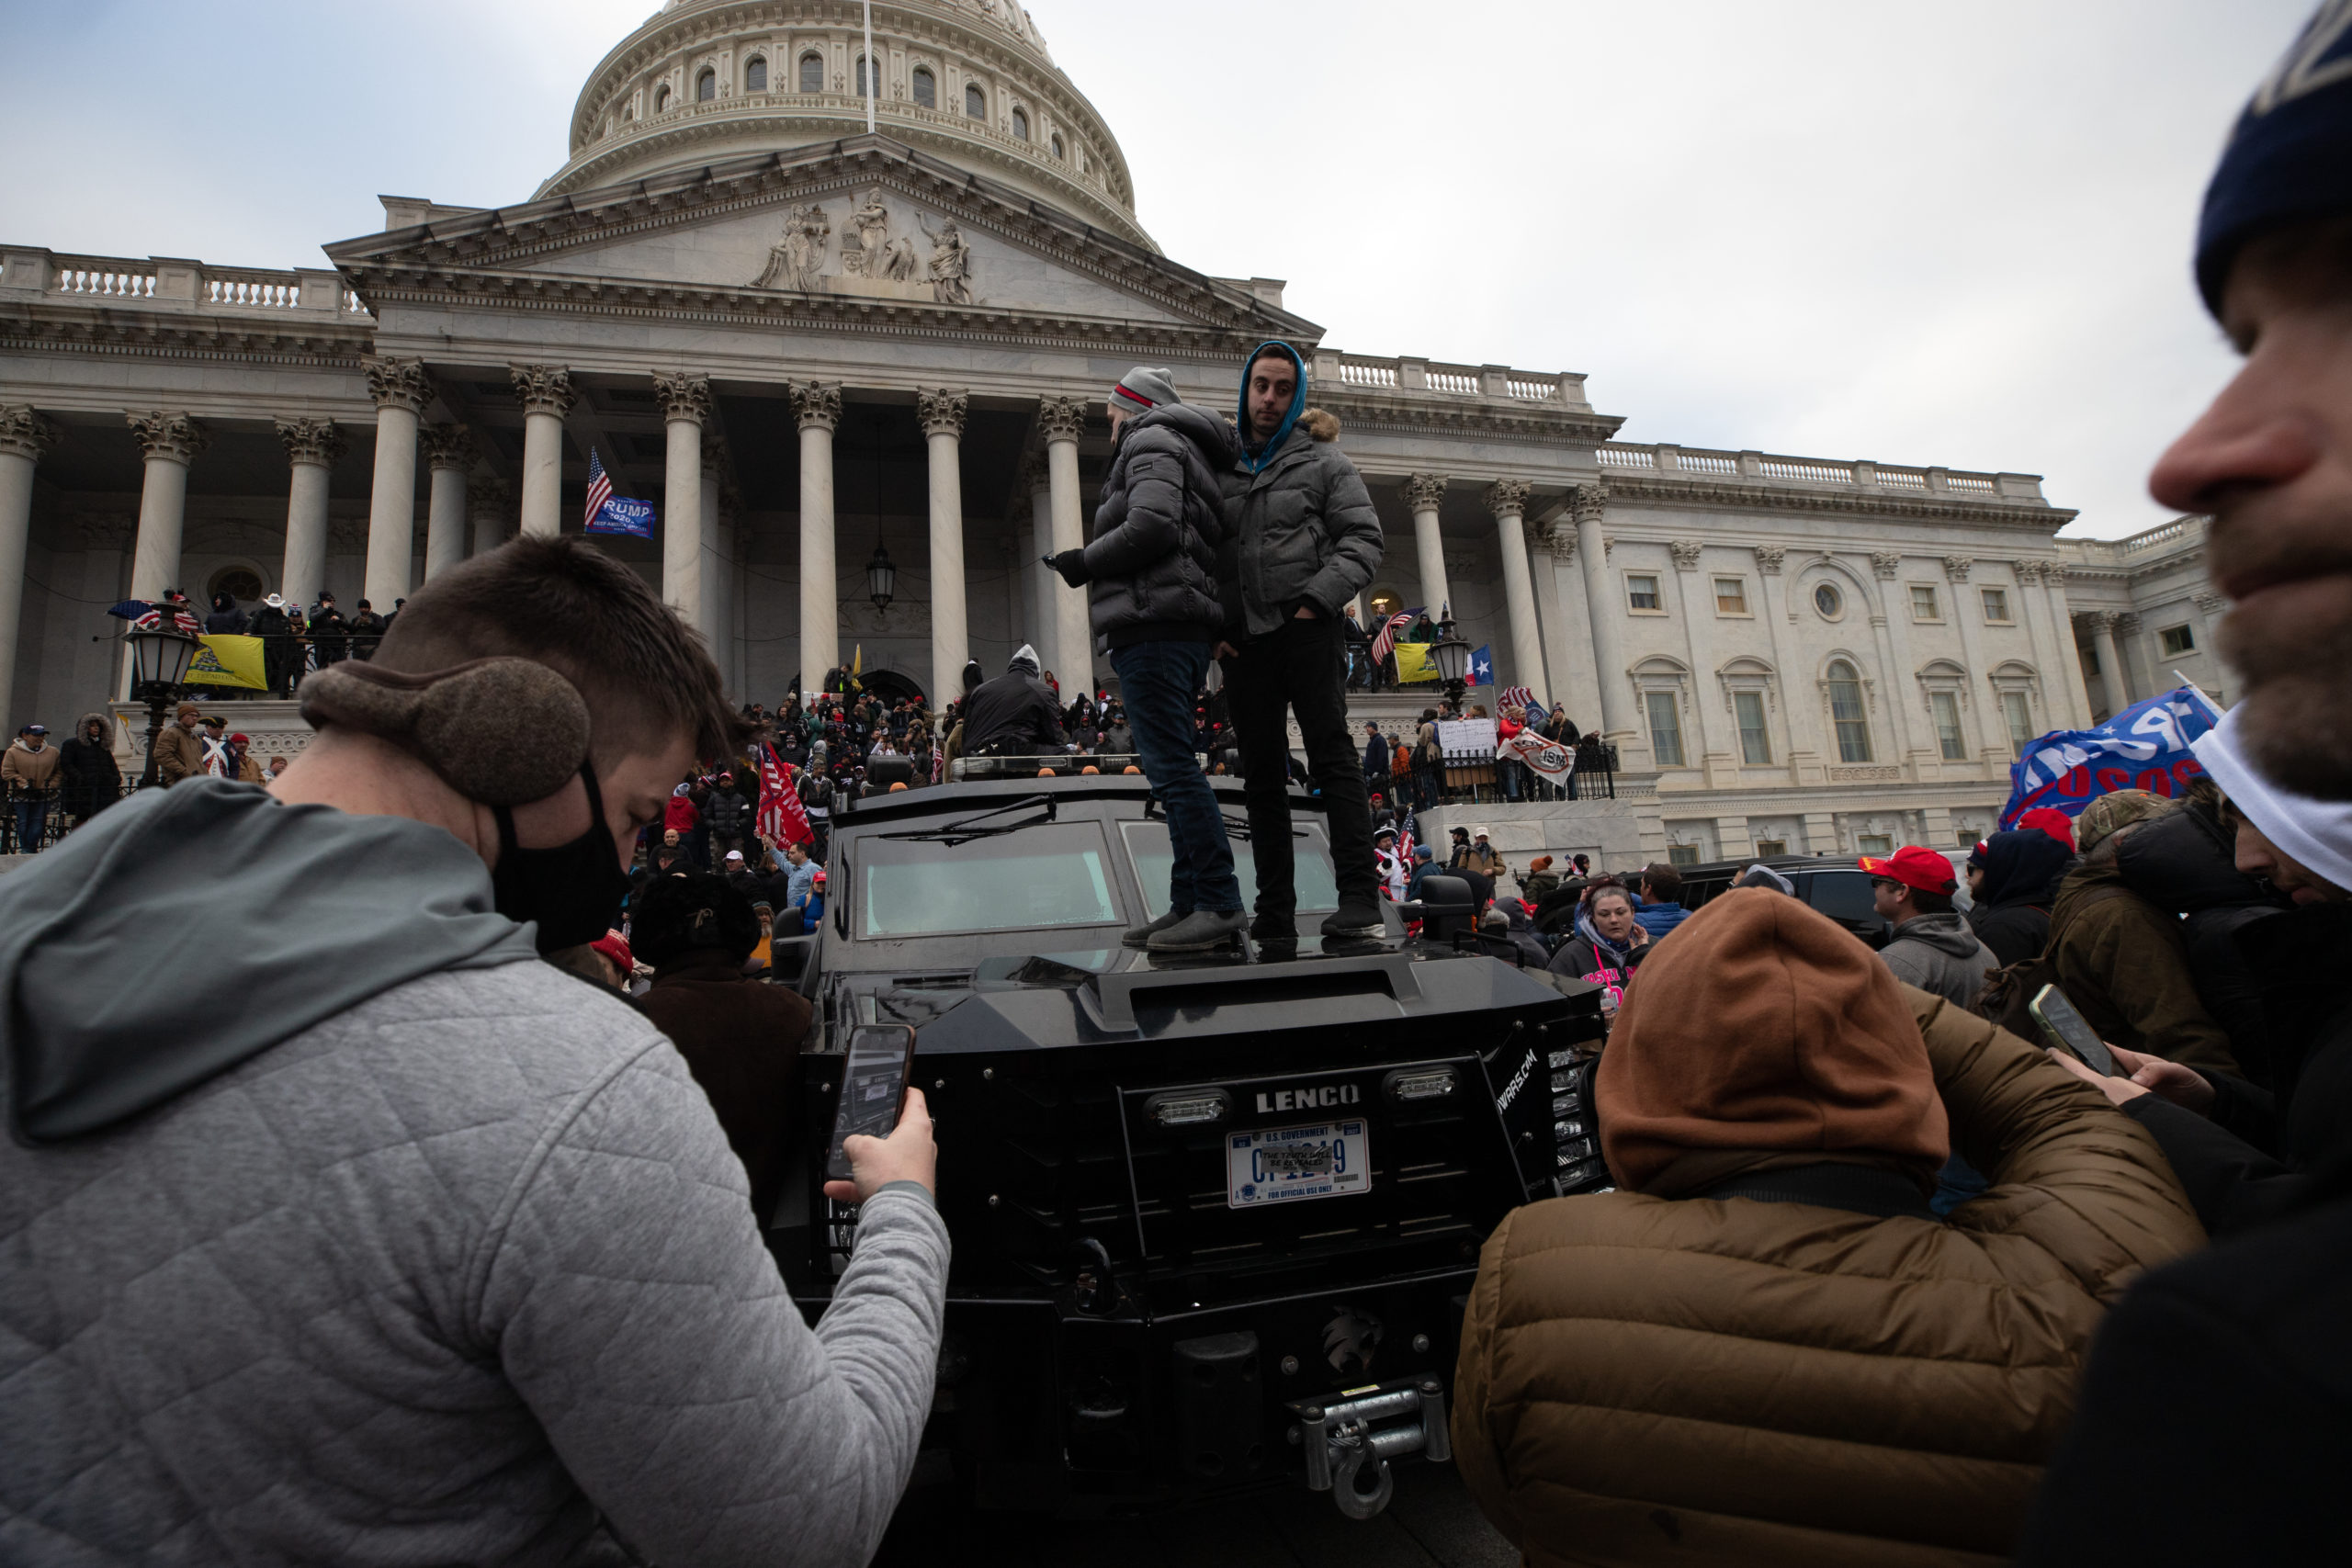 A man stands on top of a police vehicle outside of the U.S. Capitol on Wednesday amidst a riot. (Kaylee Greenlee/Daily Caller News Foundation )